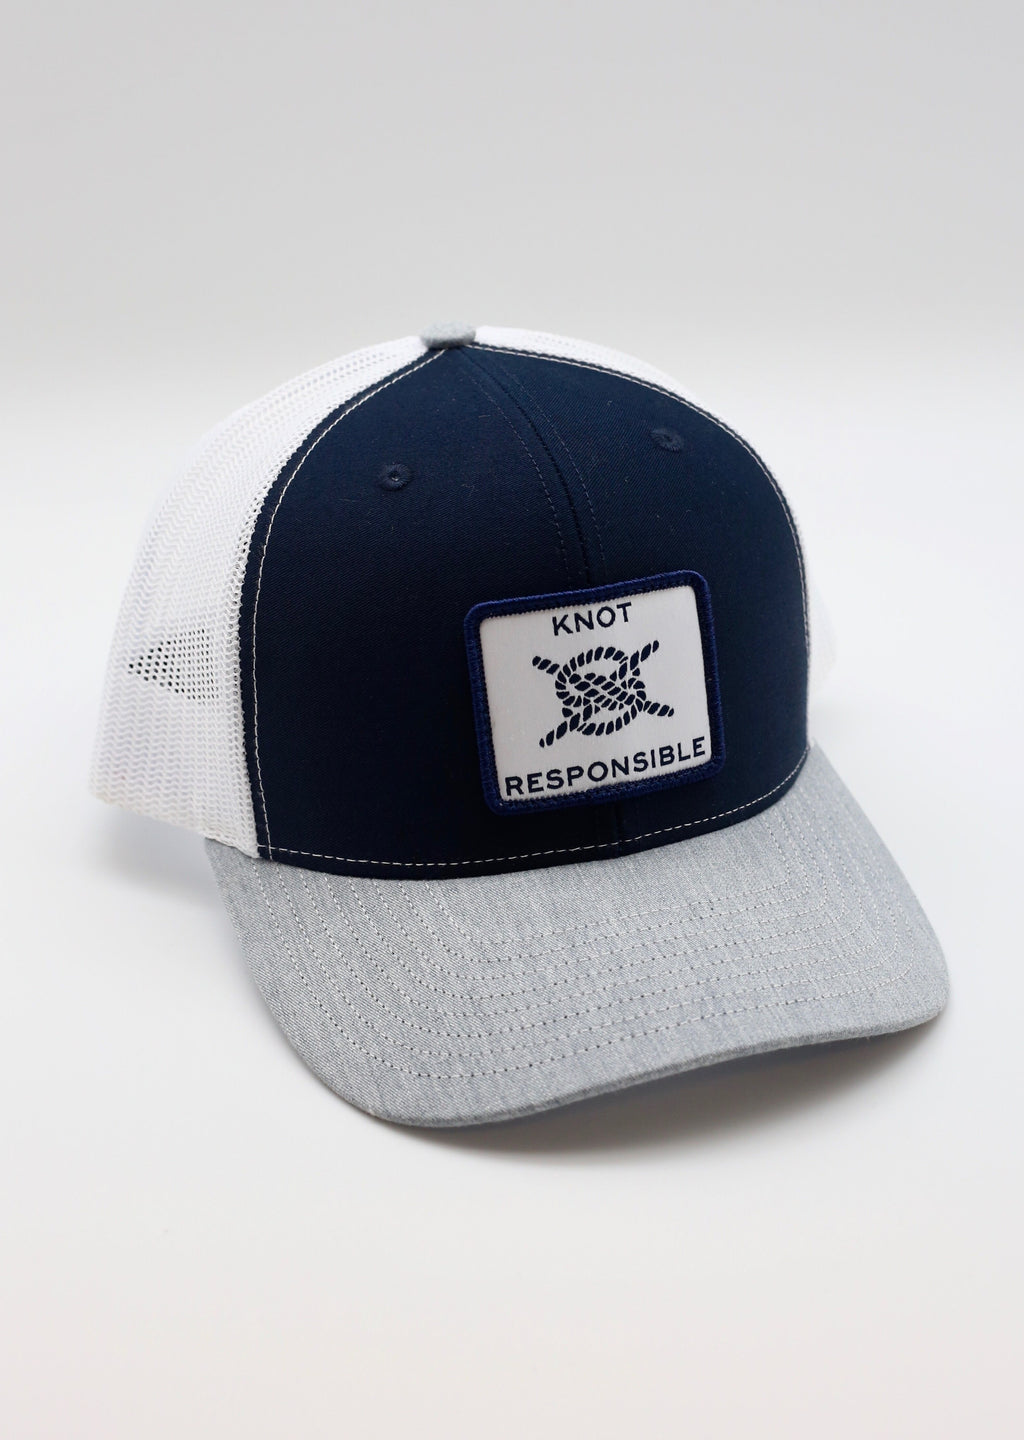 Original Trucker Hat Classic Logo- Navy/White/Grey